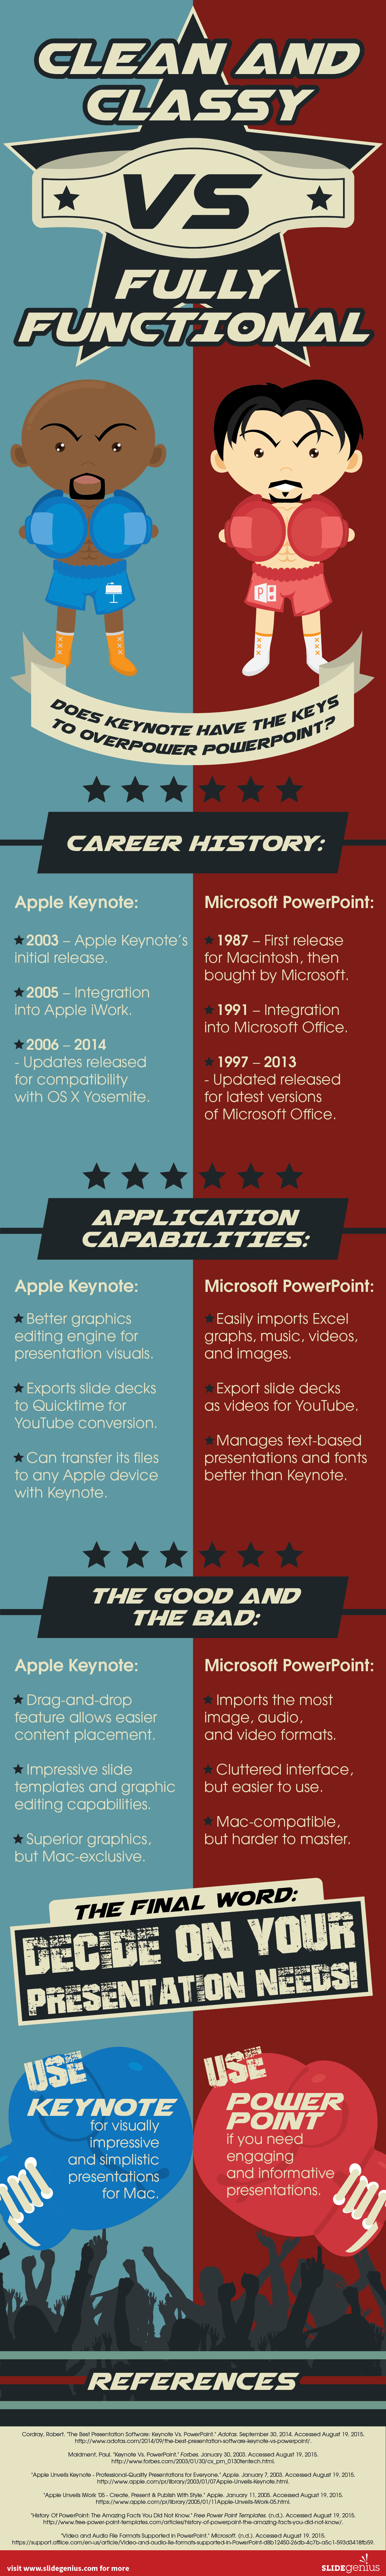 Does Keynote Have the Keys to Overpower PowerPoint?